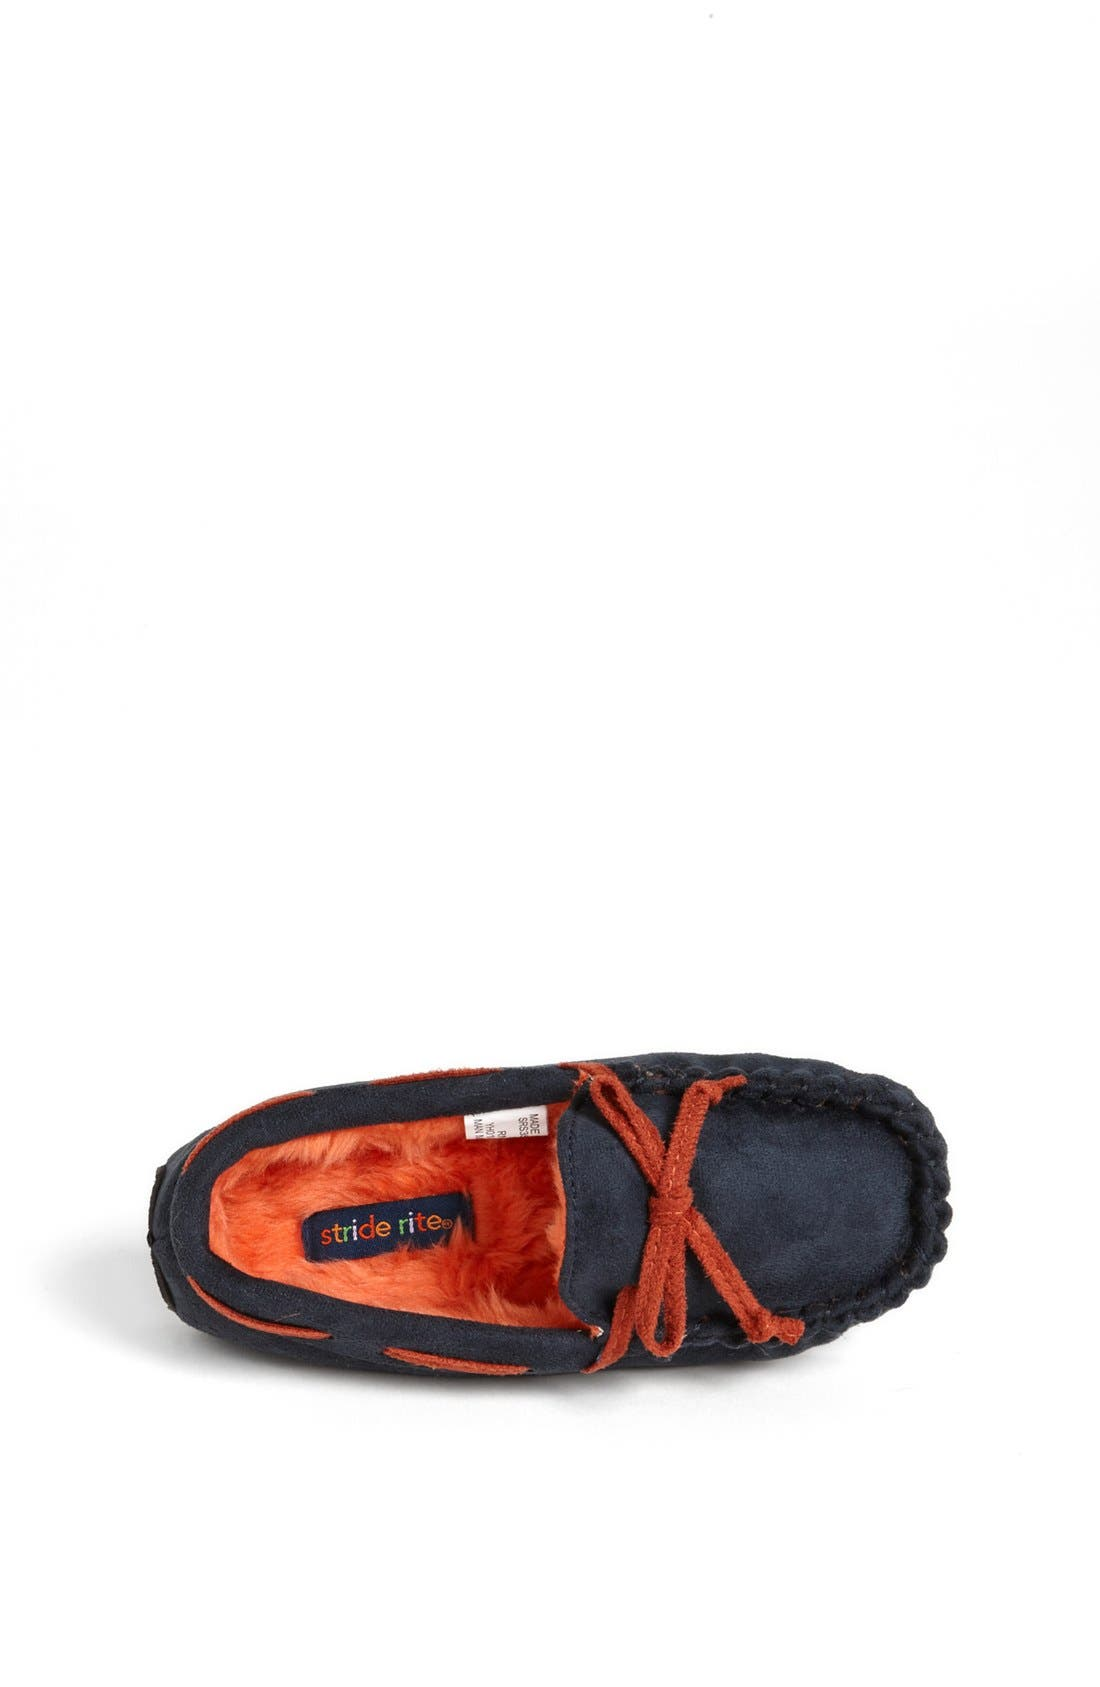 Alternate Image 3  - Stride Rite Moc Stitched Slippers (Toddler & Little Kid)